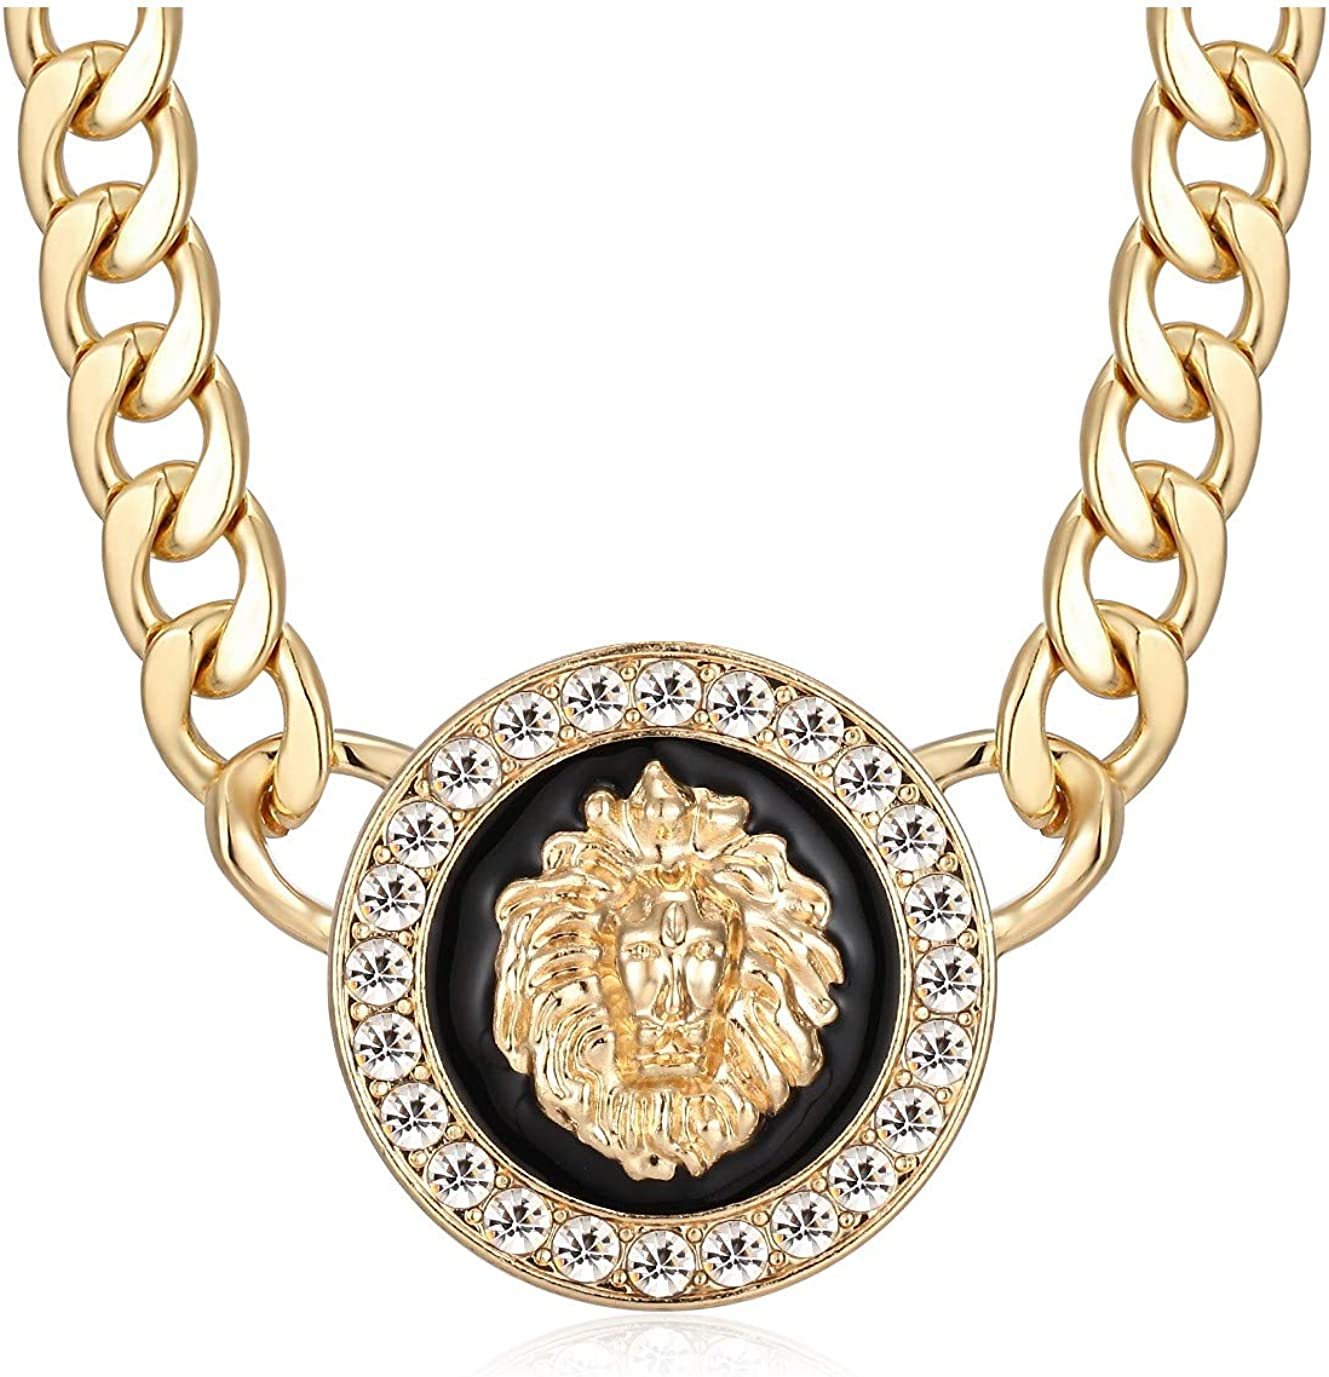 Women's Basketball Wives Style Gold Lion Heads Necklace Hip Hop Statement Chunky Chain Choker Necklace